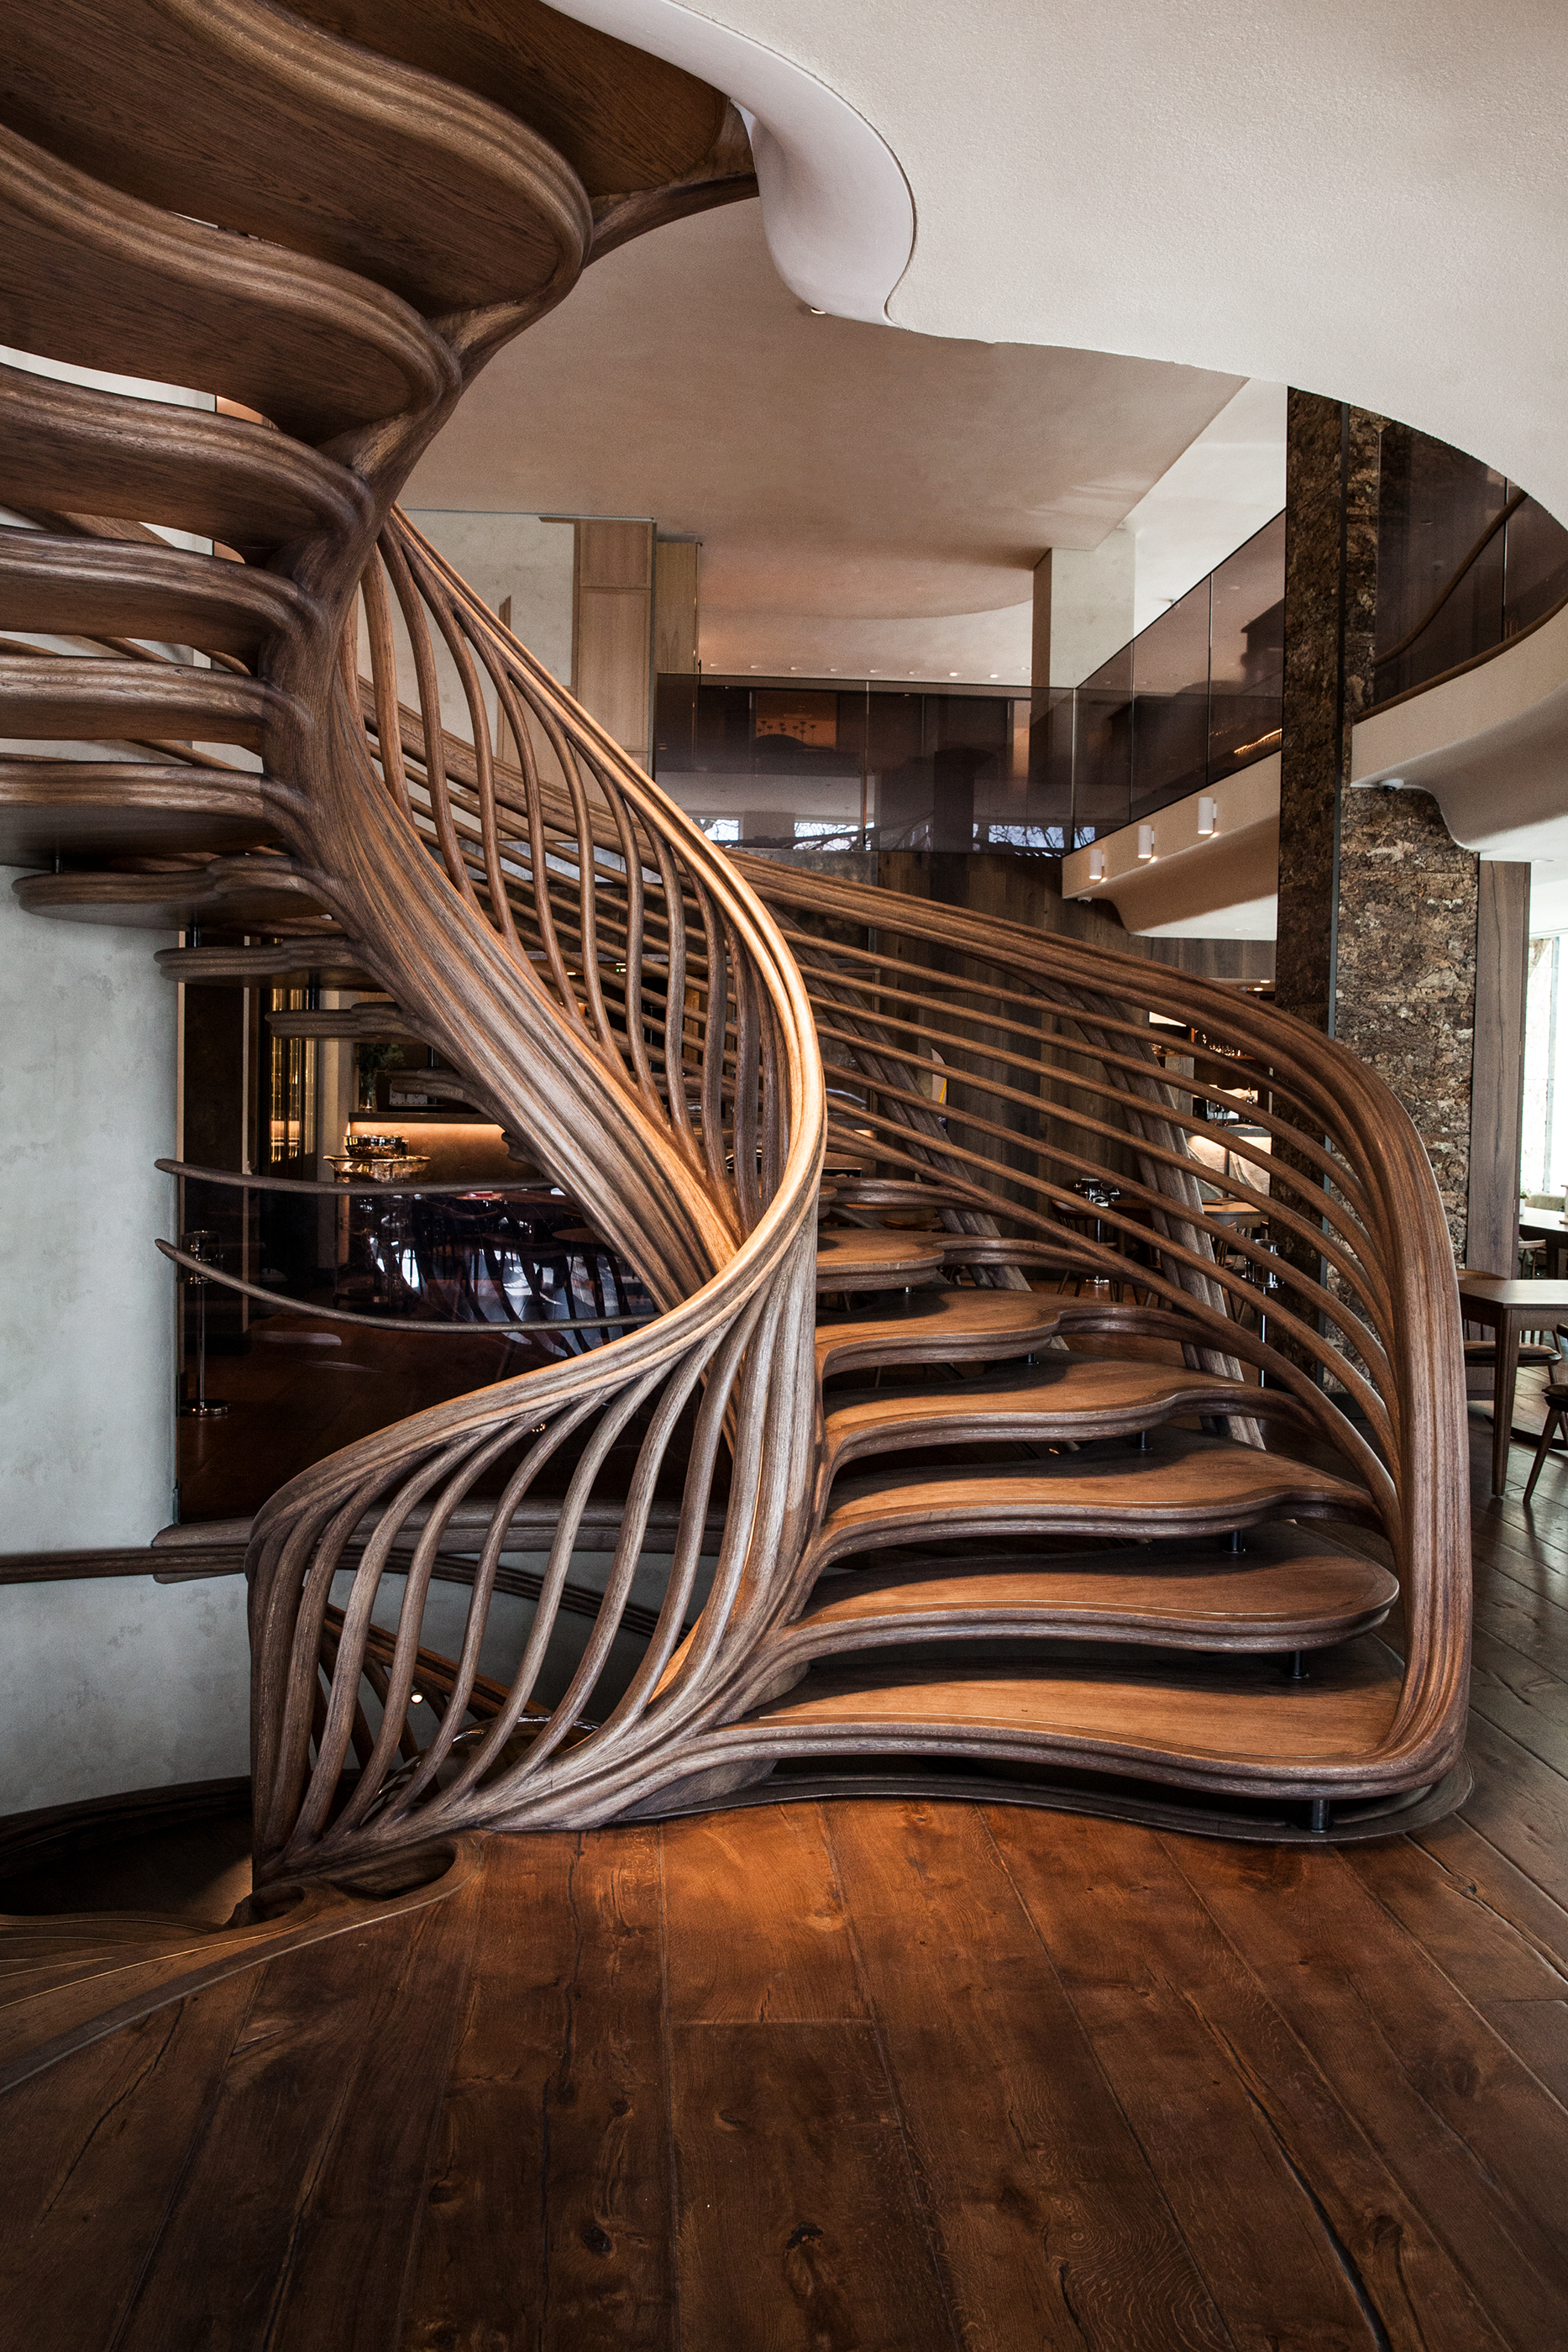 GROUND restaurant, with Atmos feature spiral staircase